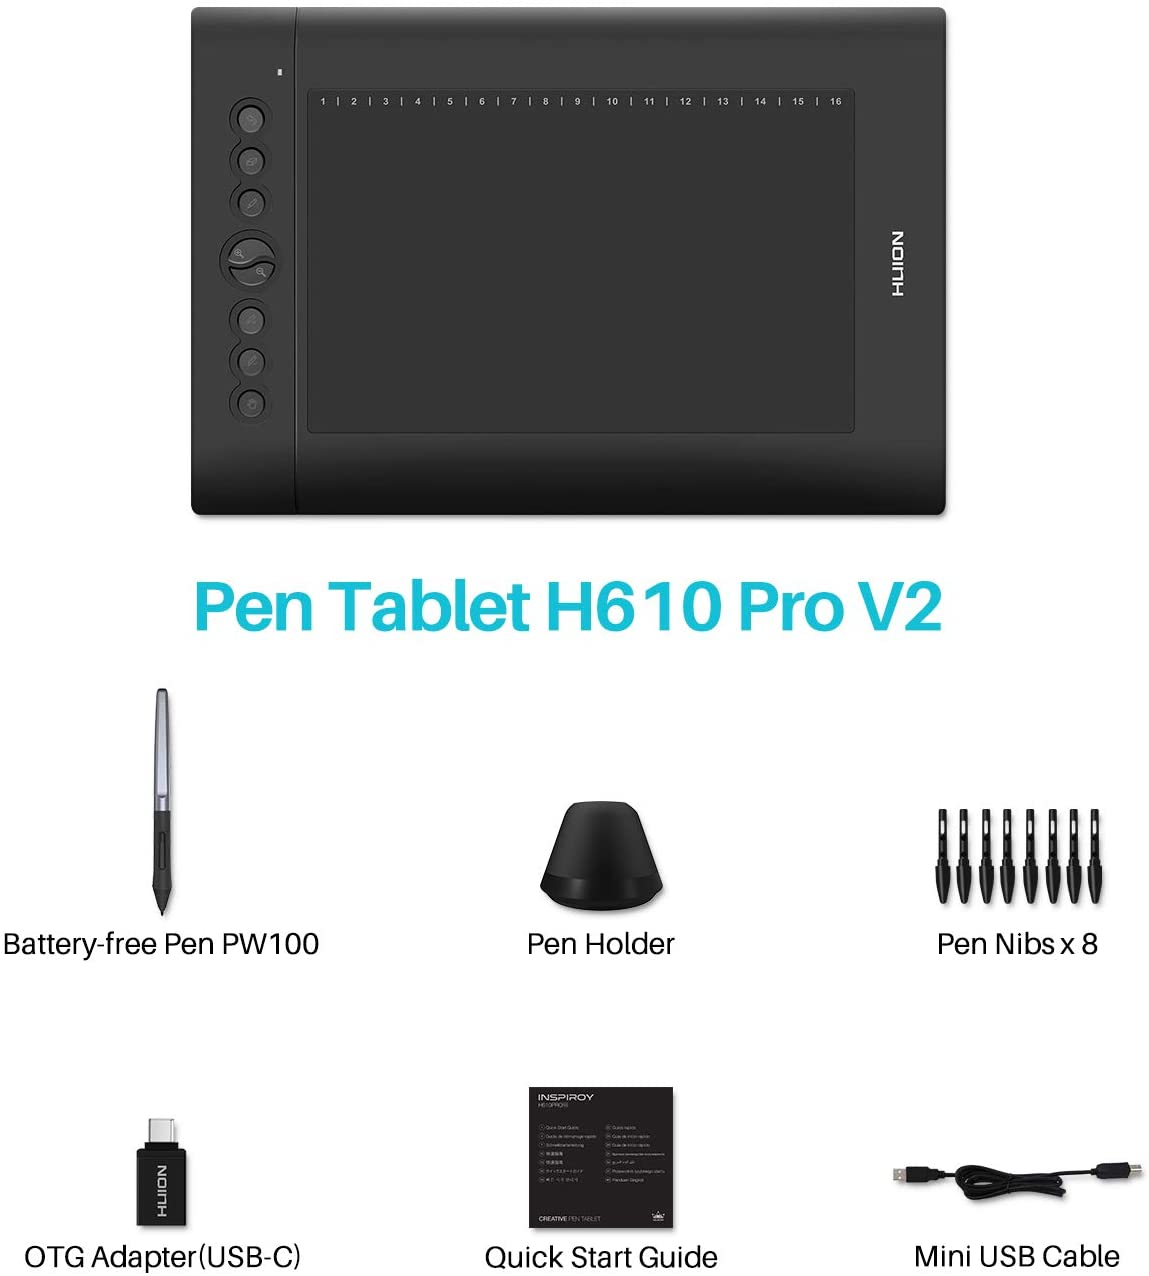 HUION H610 Pro V2 Graphic Drawing Tablet Chromebook and Android Supported Pen Tablet Tilt Function Battery-Free Stylus 8192 Pen Pressure with 8 Express Keys For Sale in Trinidad